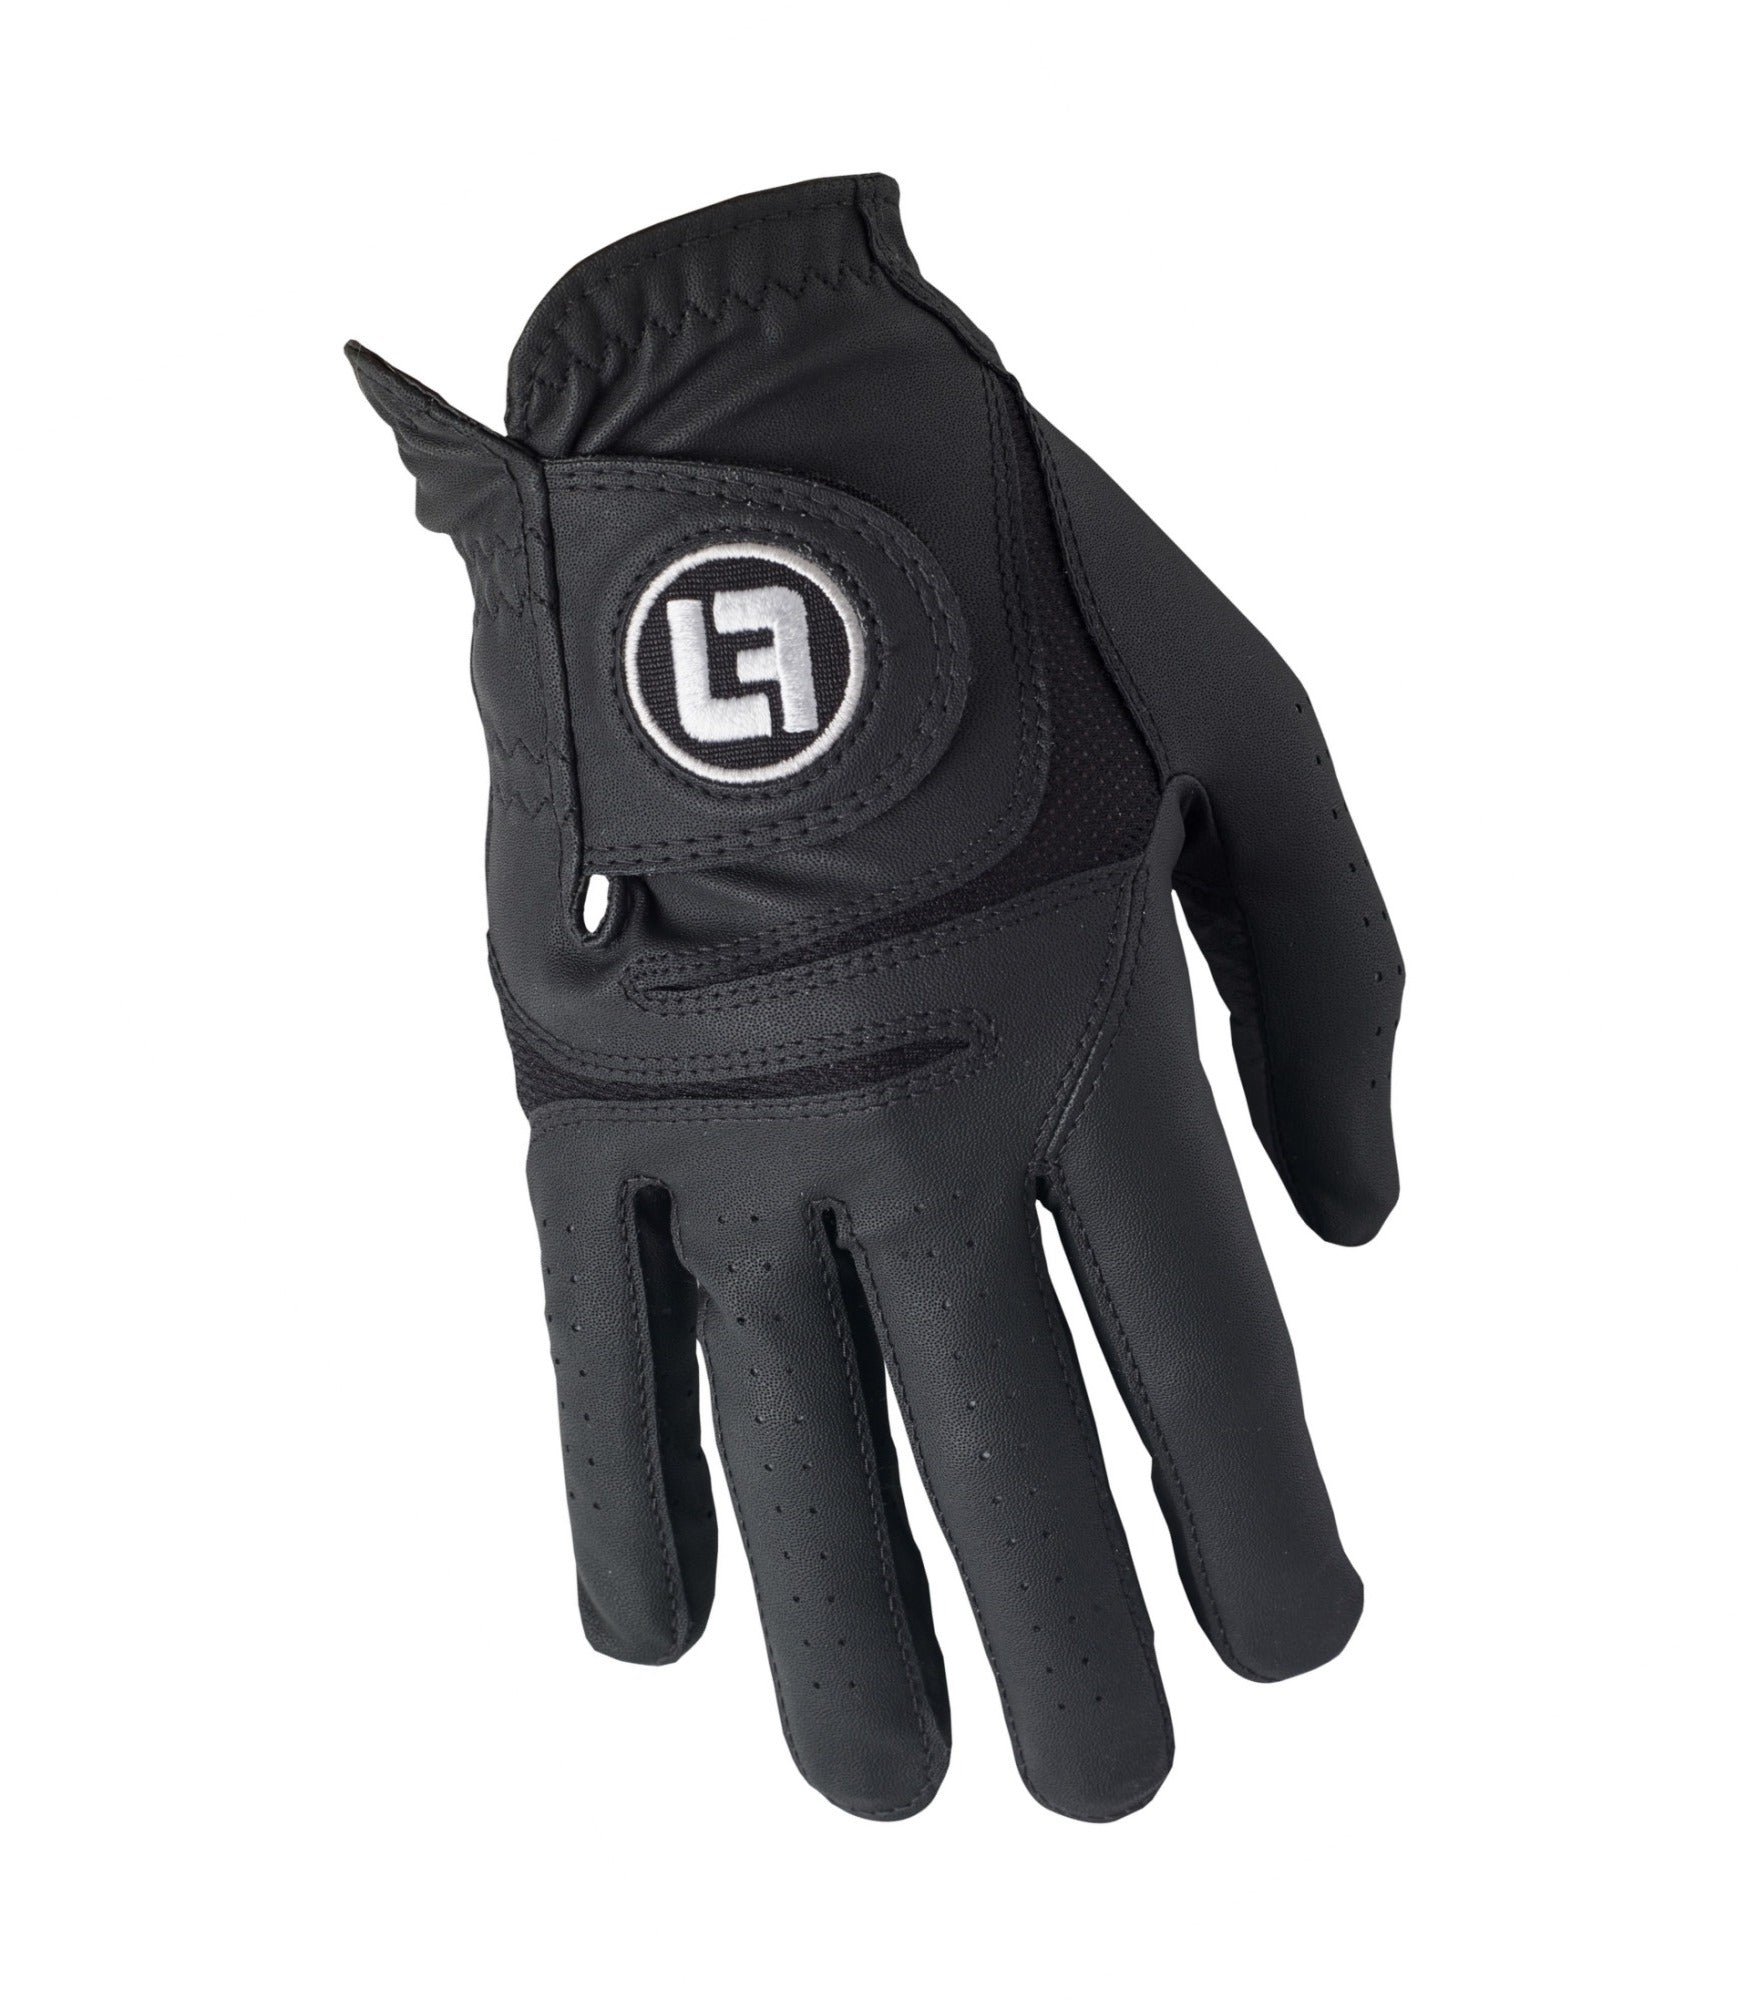 FootJoy WeatherSof Golf Glove MRH 66248